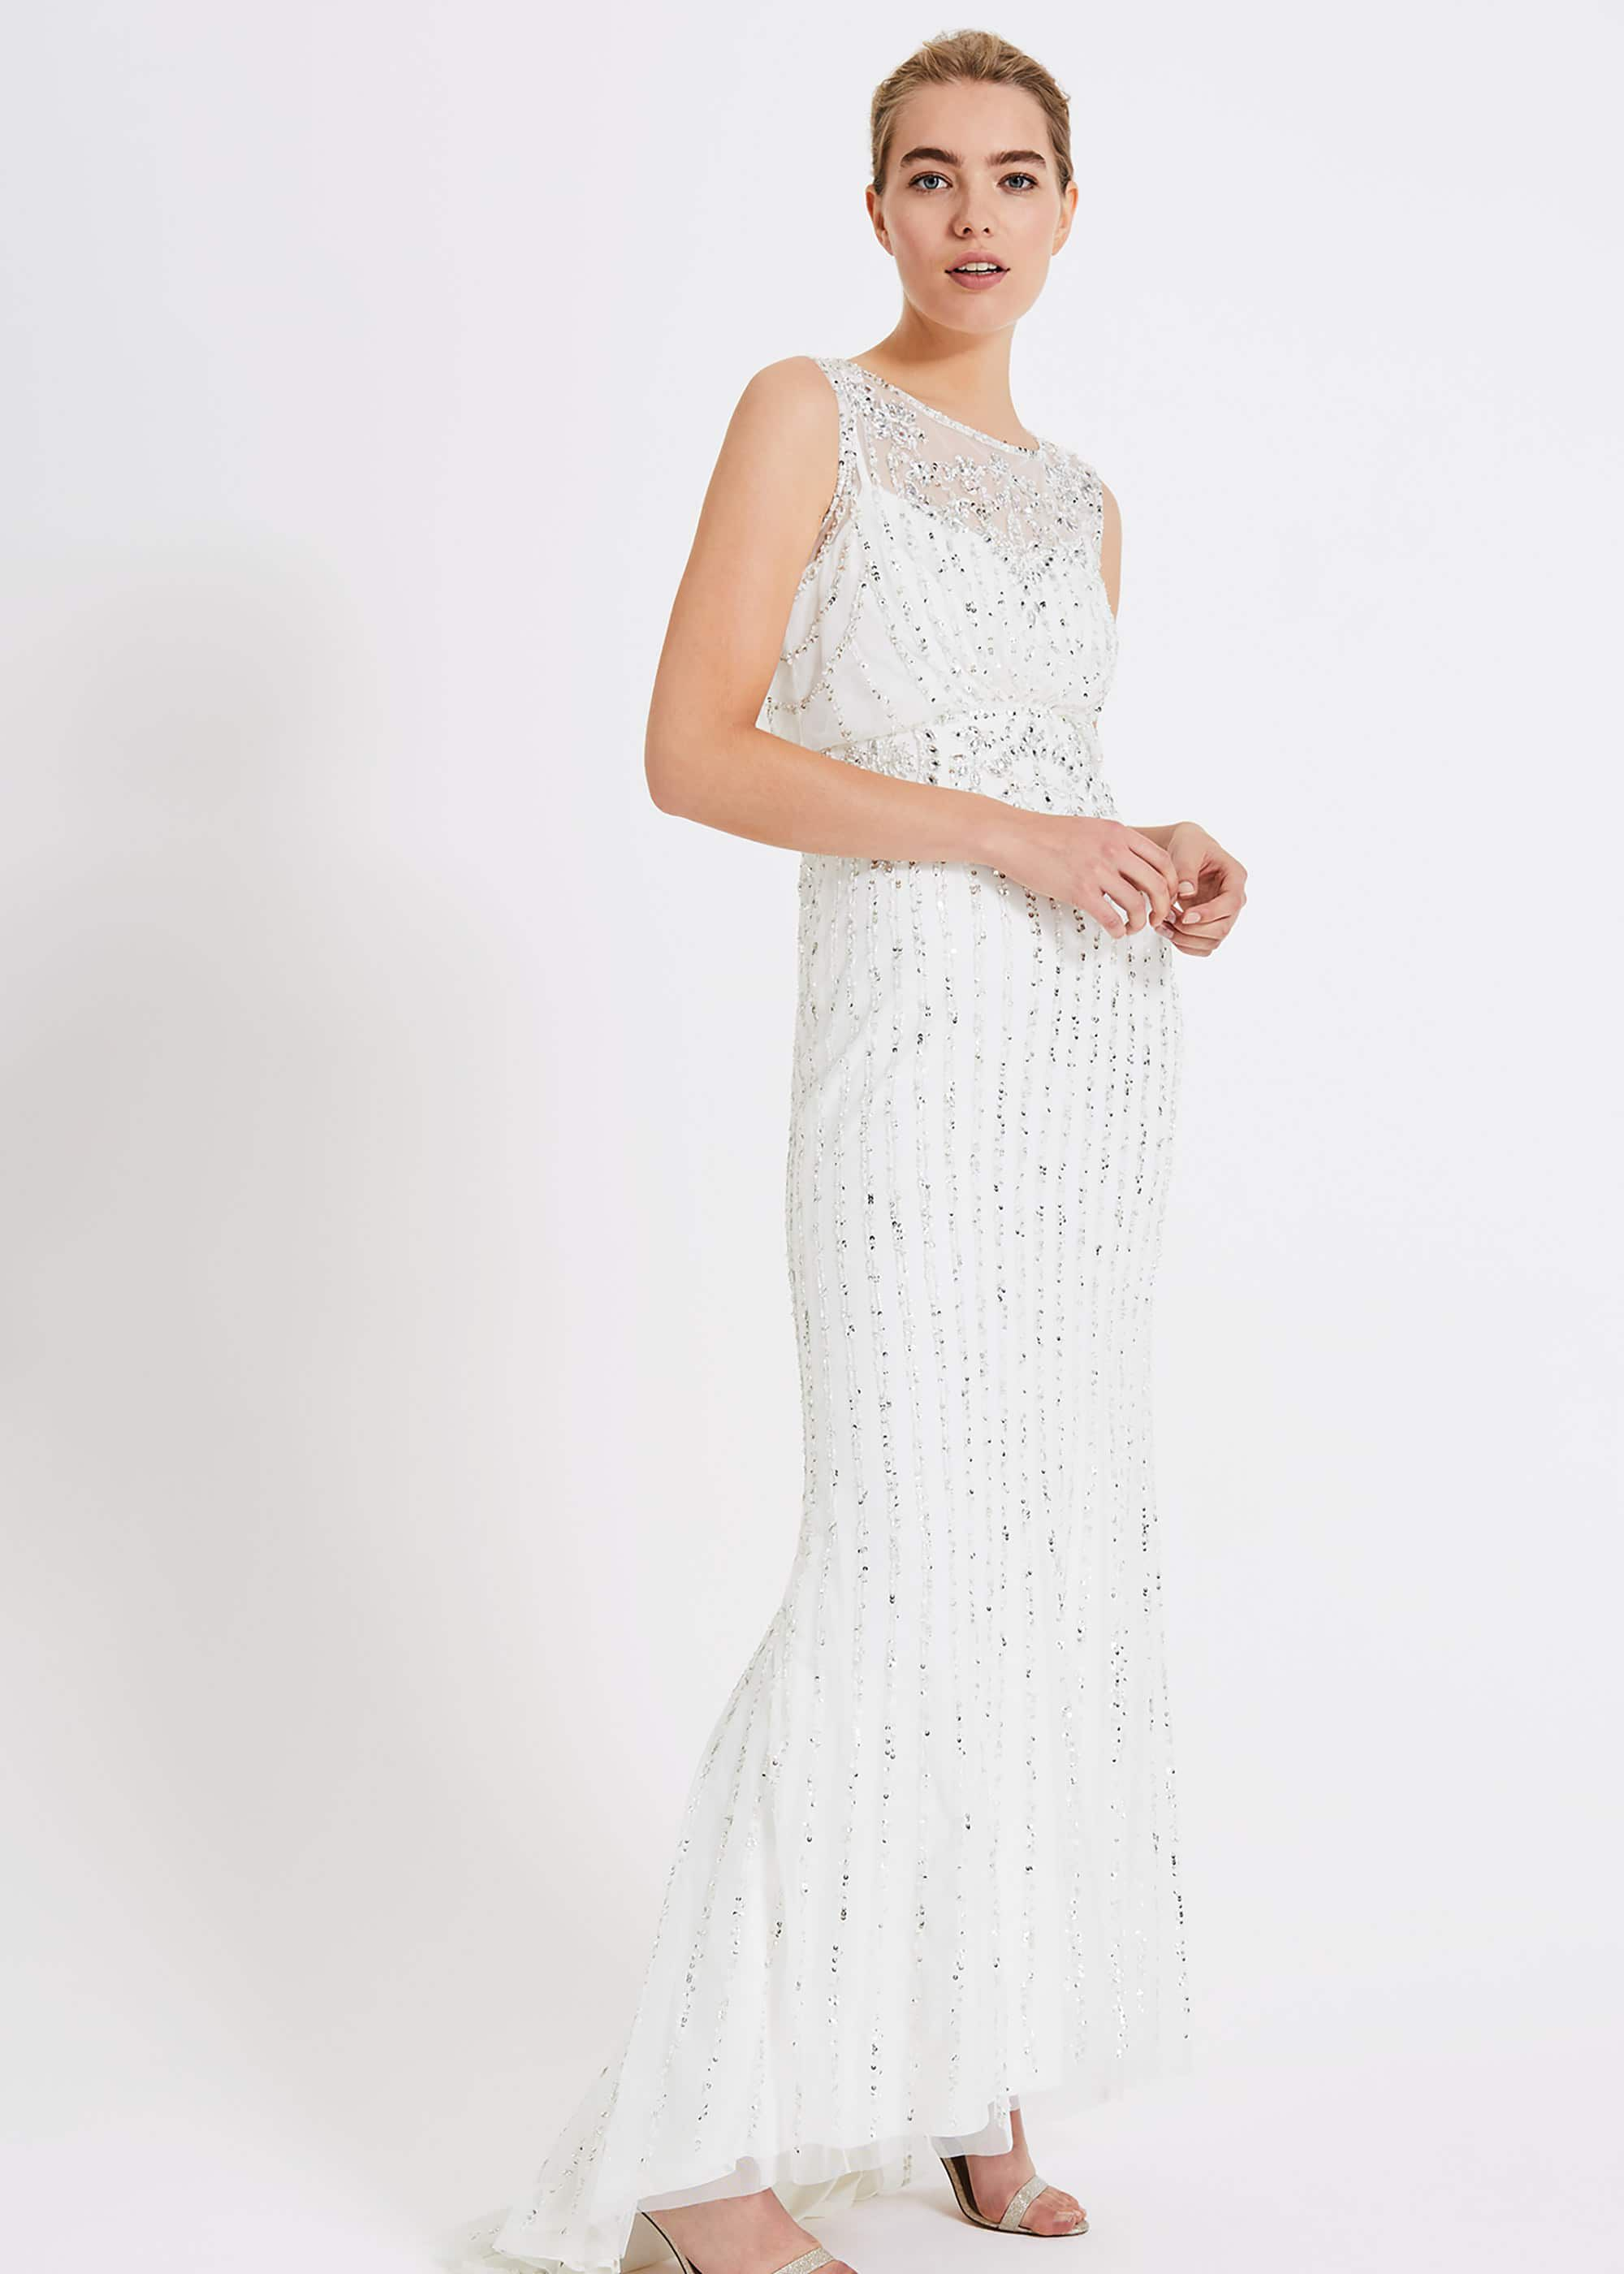 Milly Beaded Wedding Dress